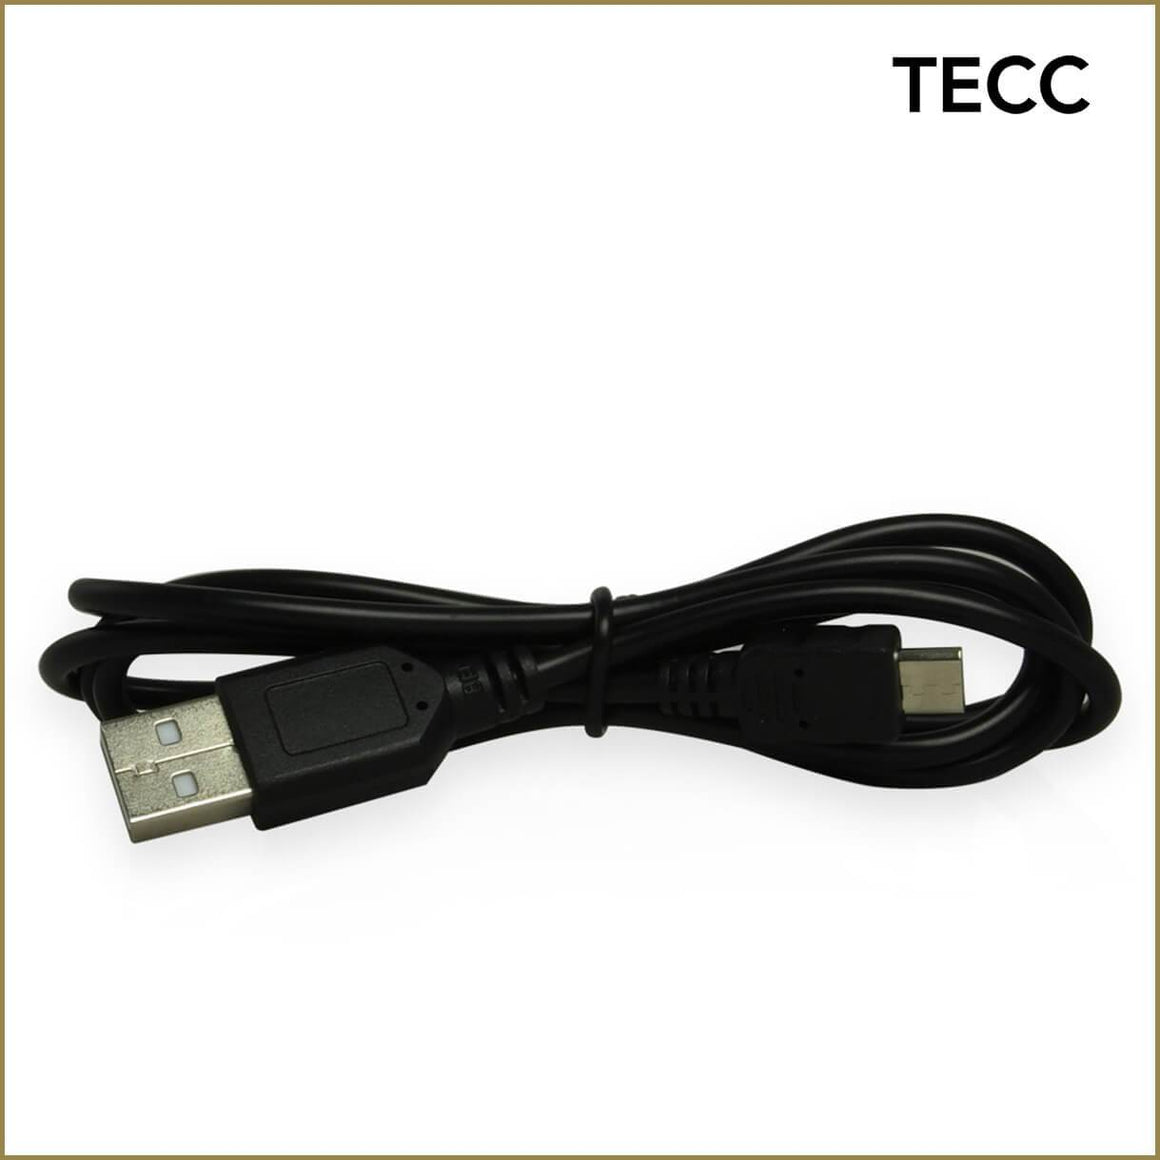 TECC 2.0 USB Charging Cable